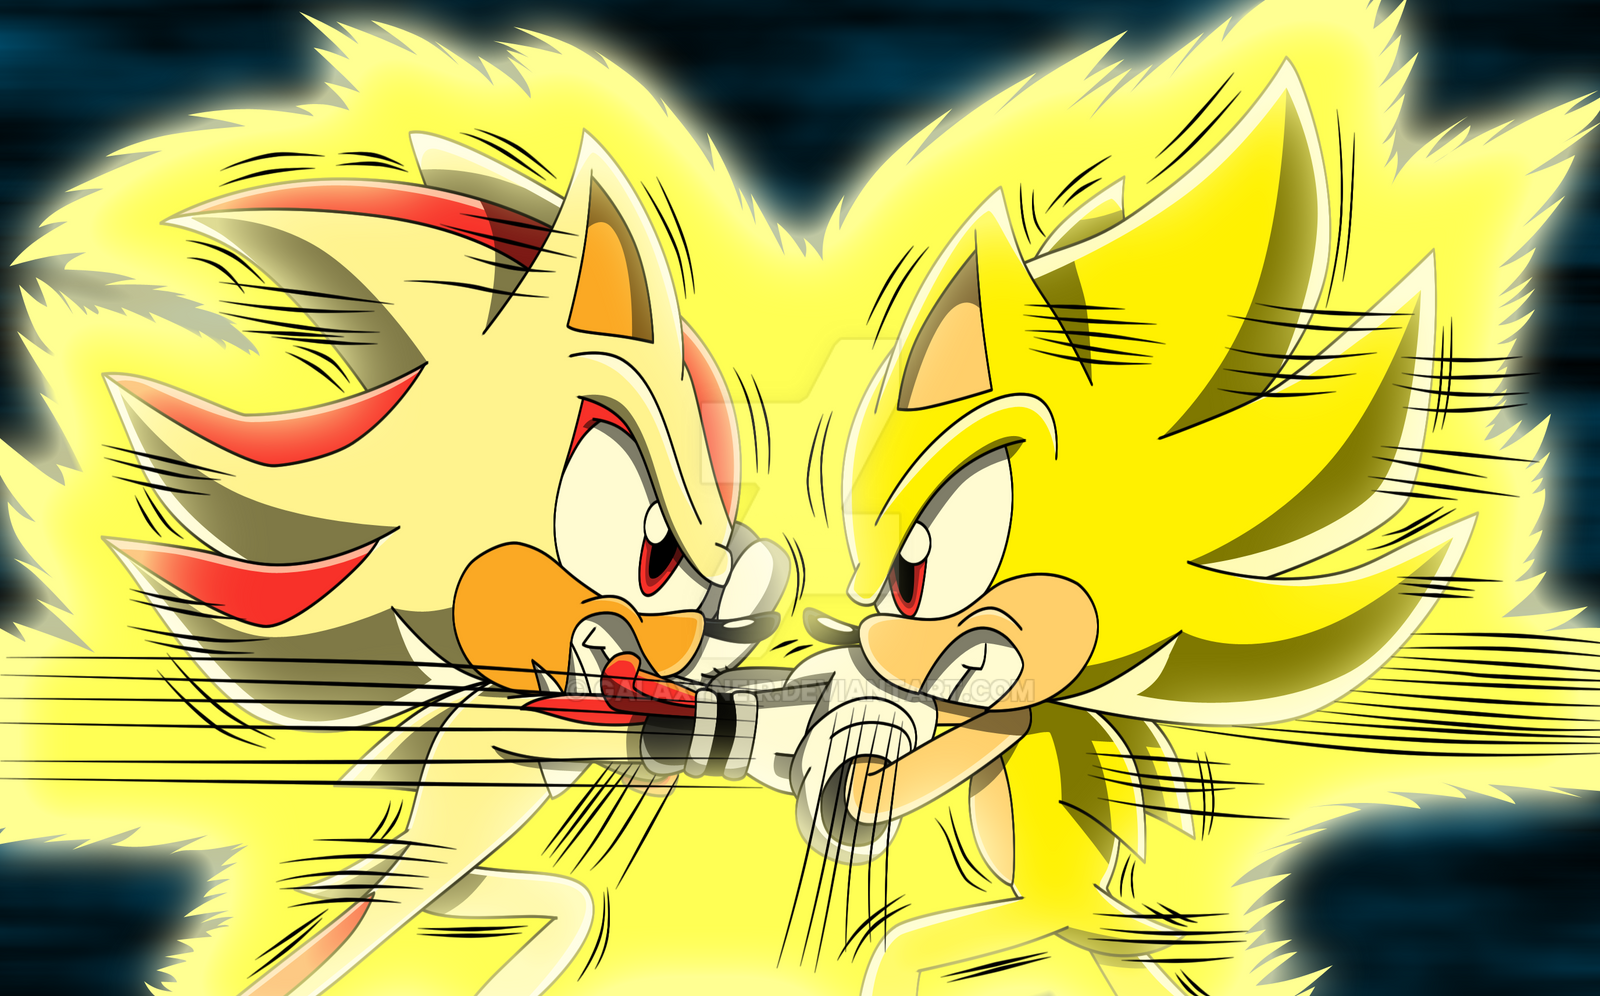 Sonic Vs Shadow Re Remake By Galaxyneir On Deviantart